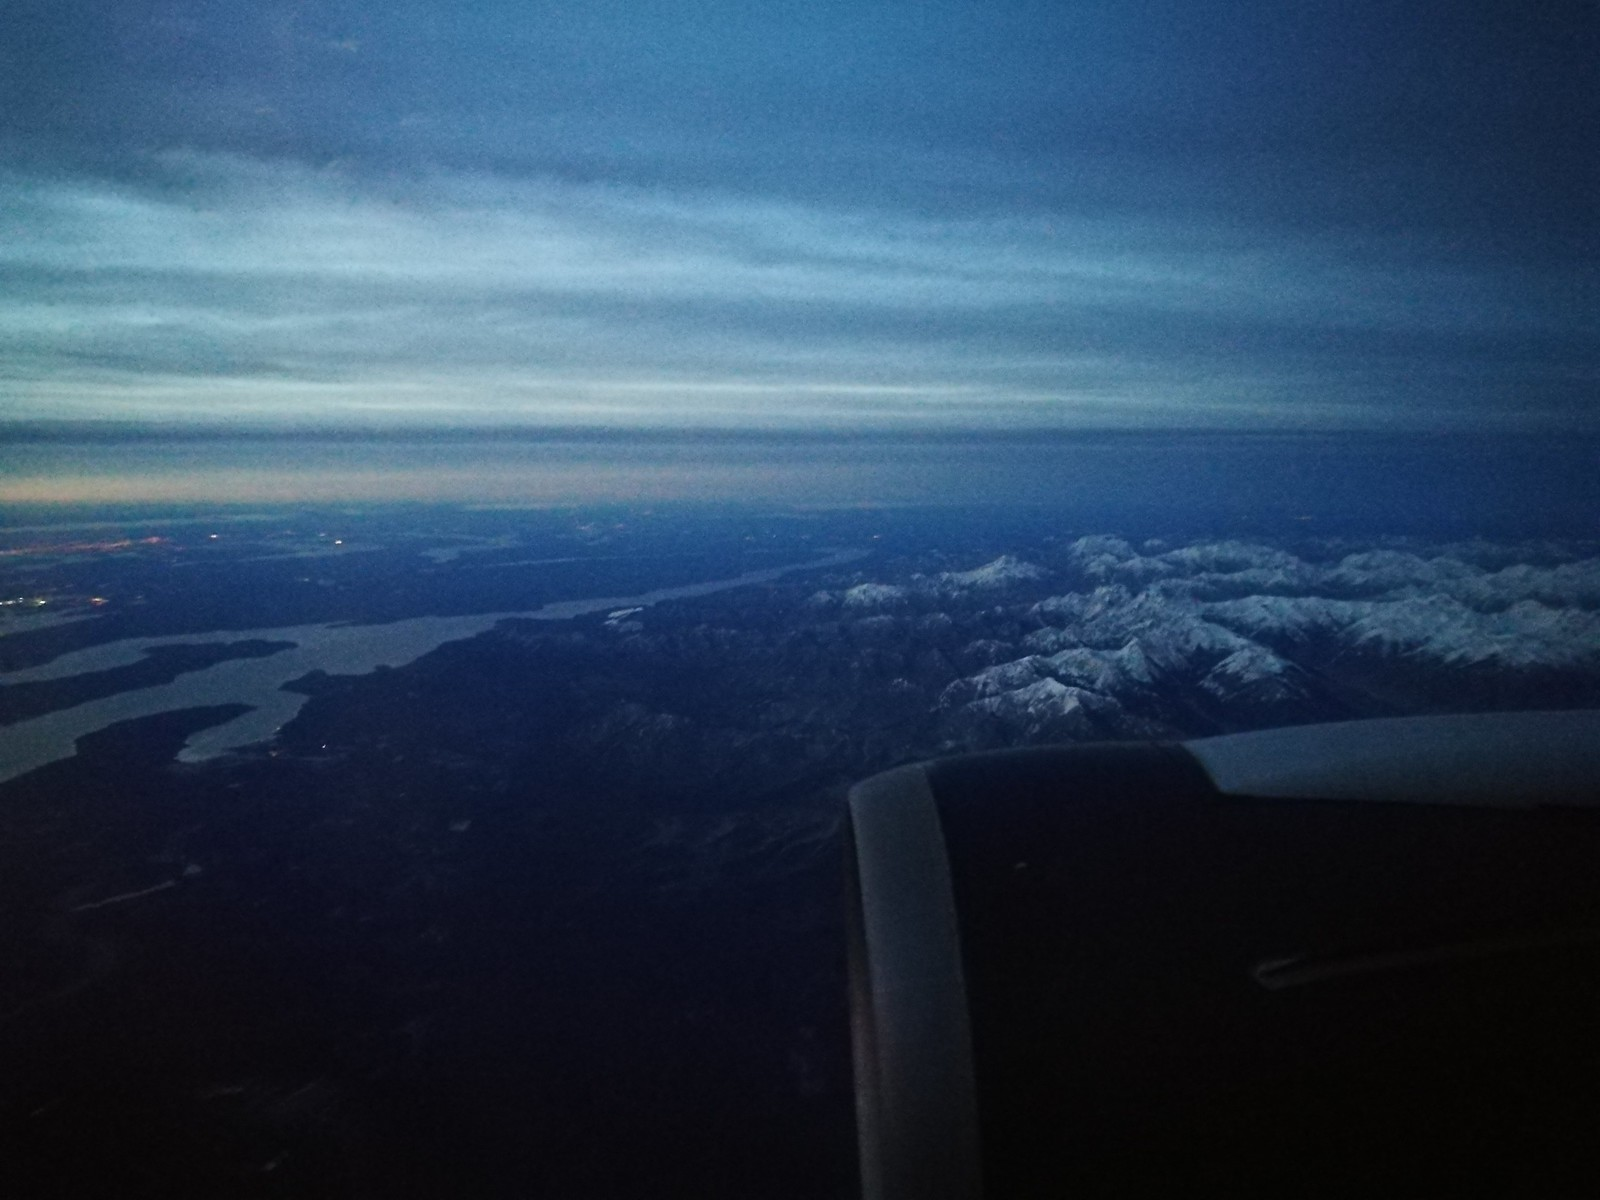 Flying past bay and mountains